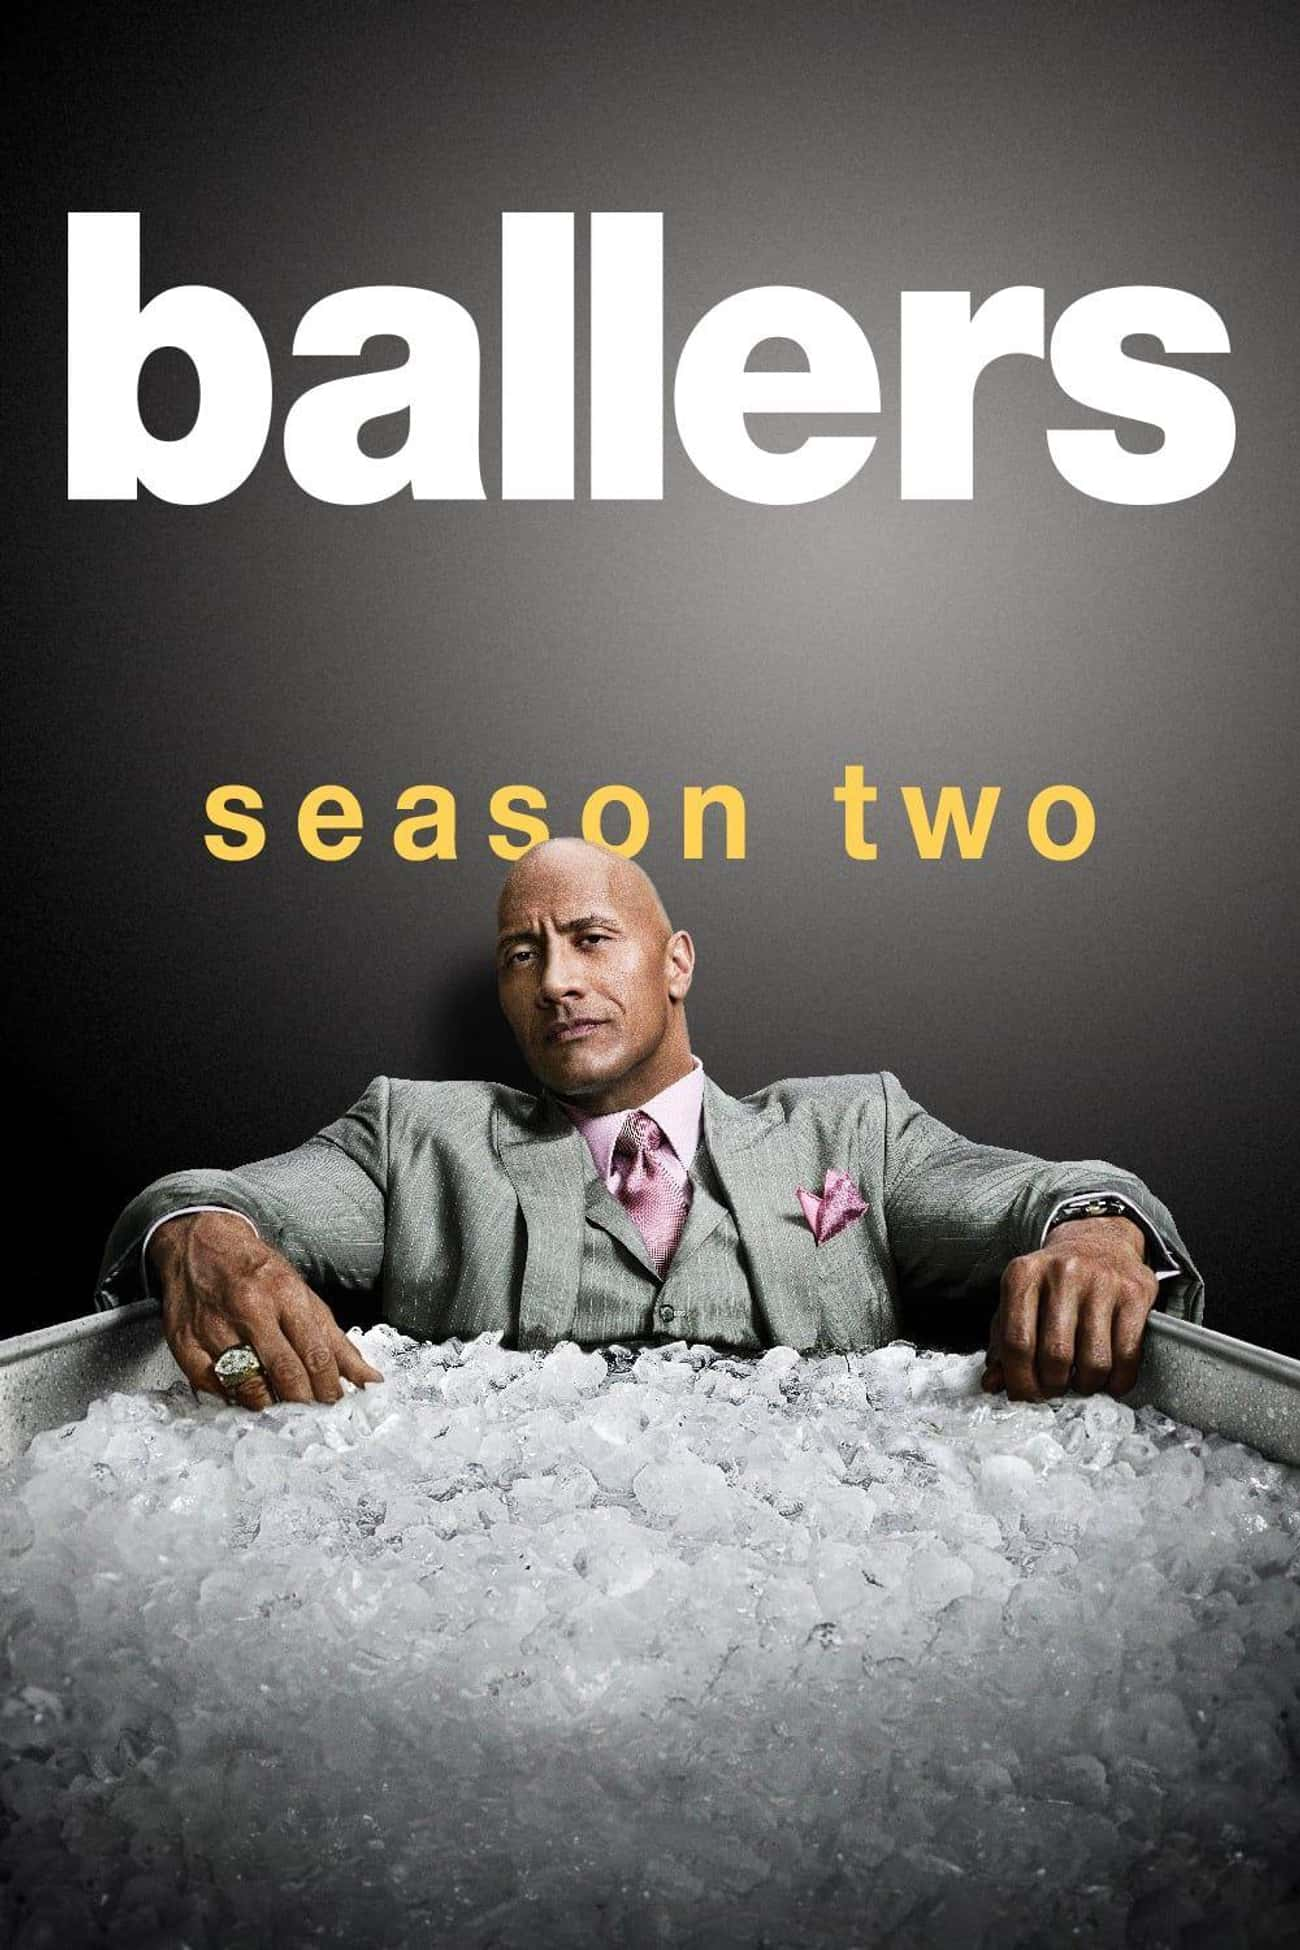 Ballers - Season 2 is listed (or ranked) 1 on the list The Best Seasons of 'Ballers'